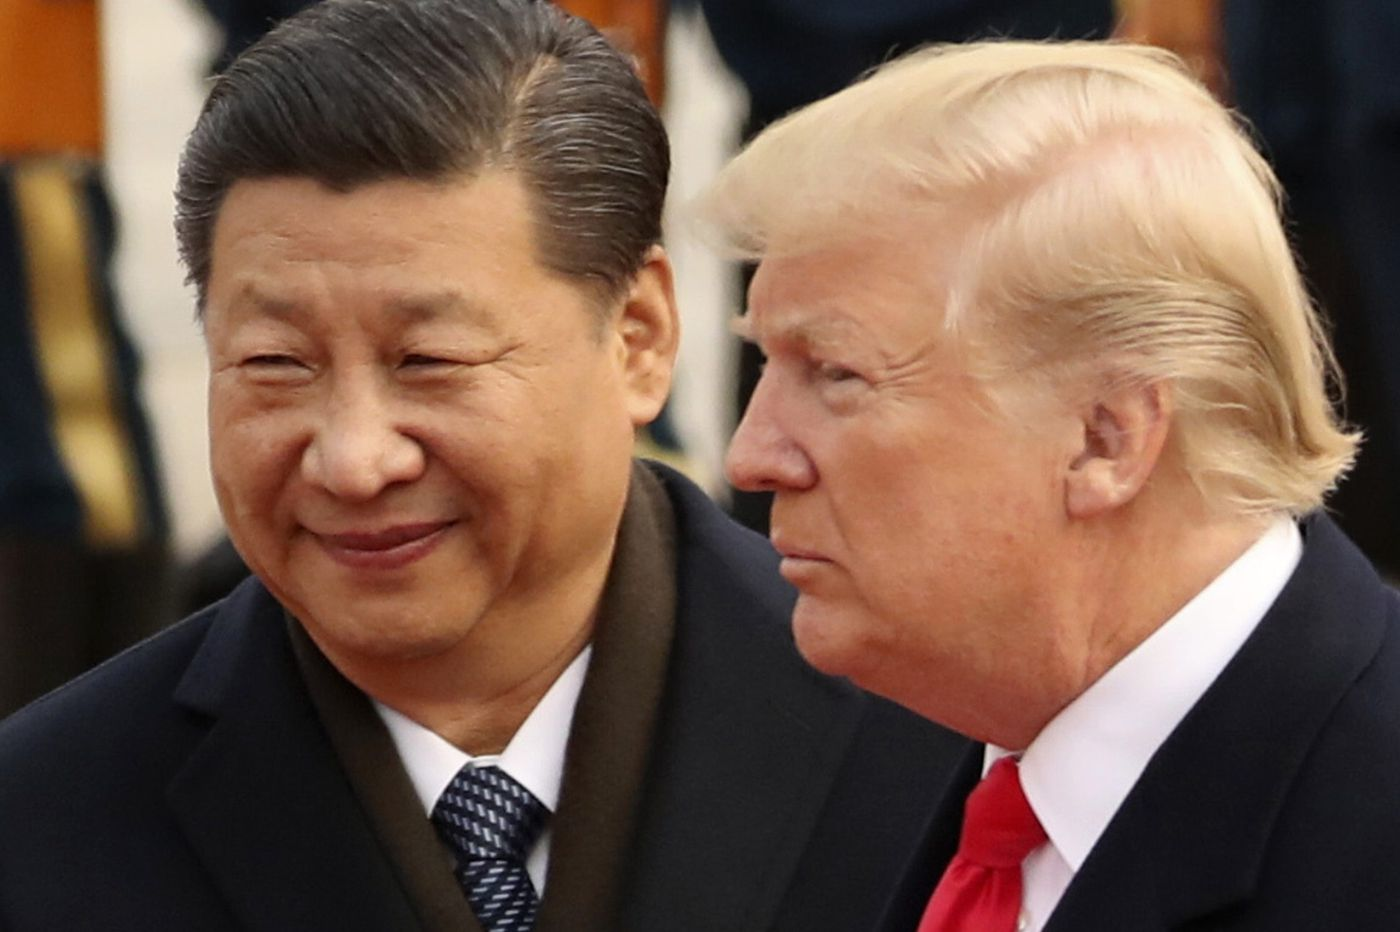 The view from China: Will Trump and Xi avoid a new Cold War? | Trudy Rubin